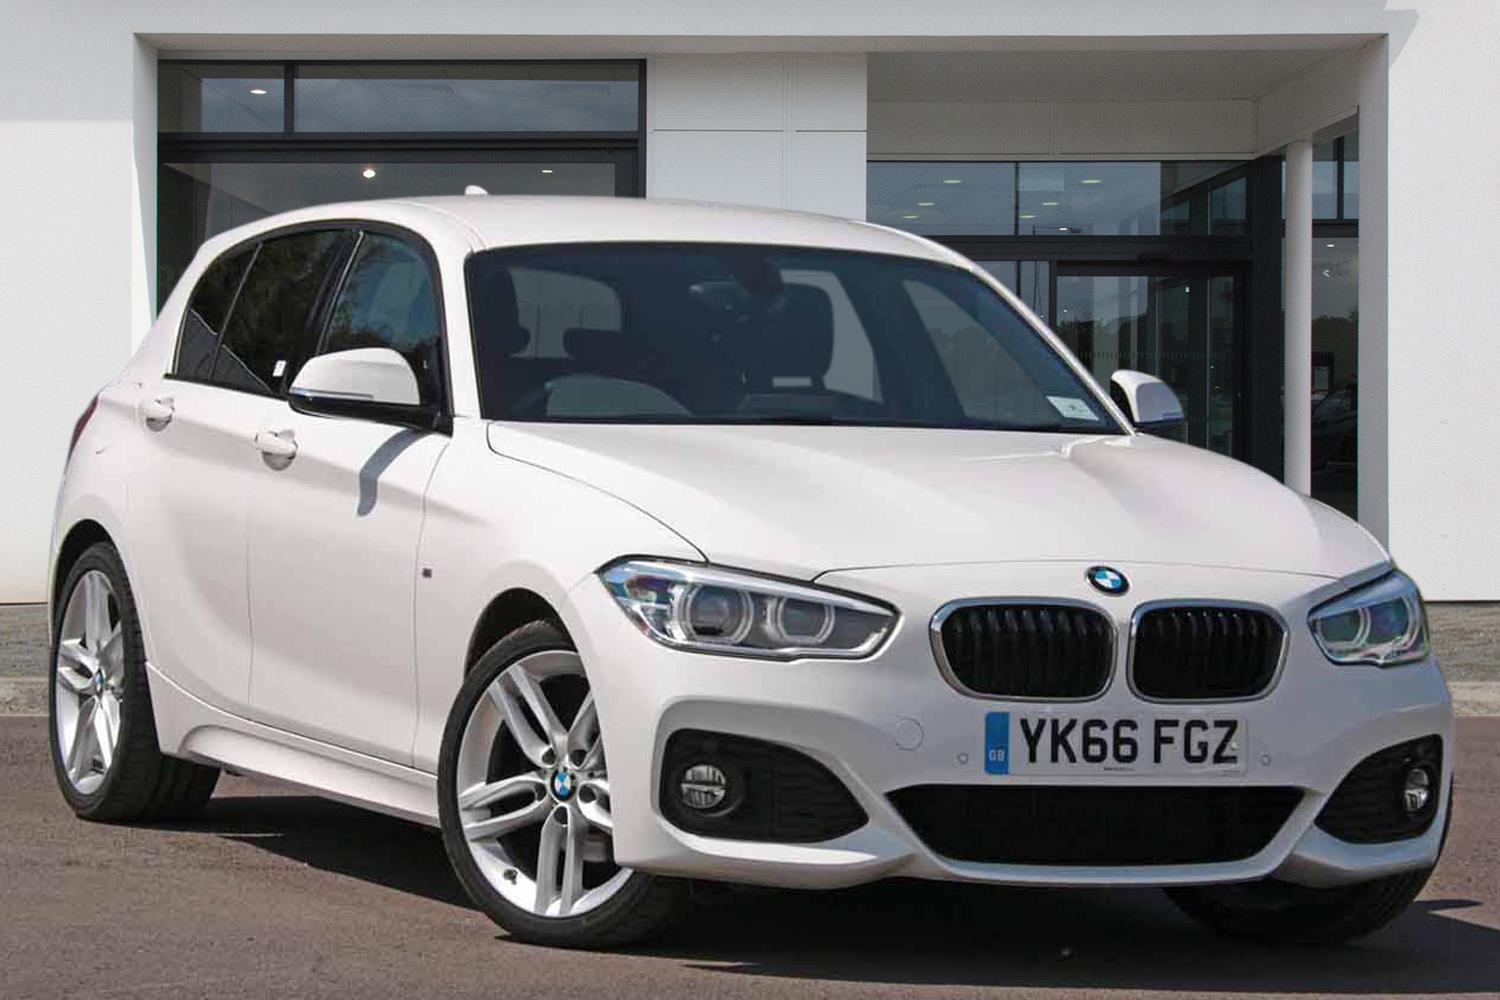 BMW 1 Series 5-door Sports Hatch YK66FGZ - Image 1